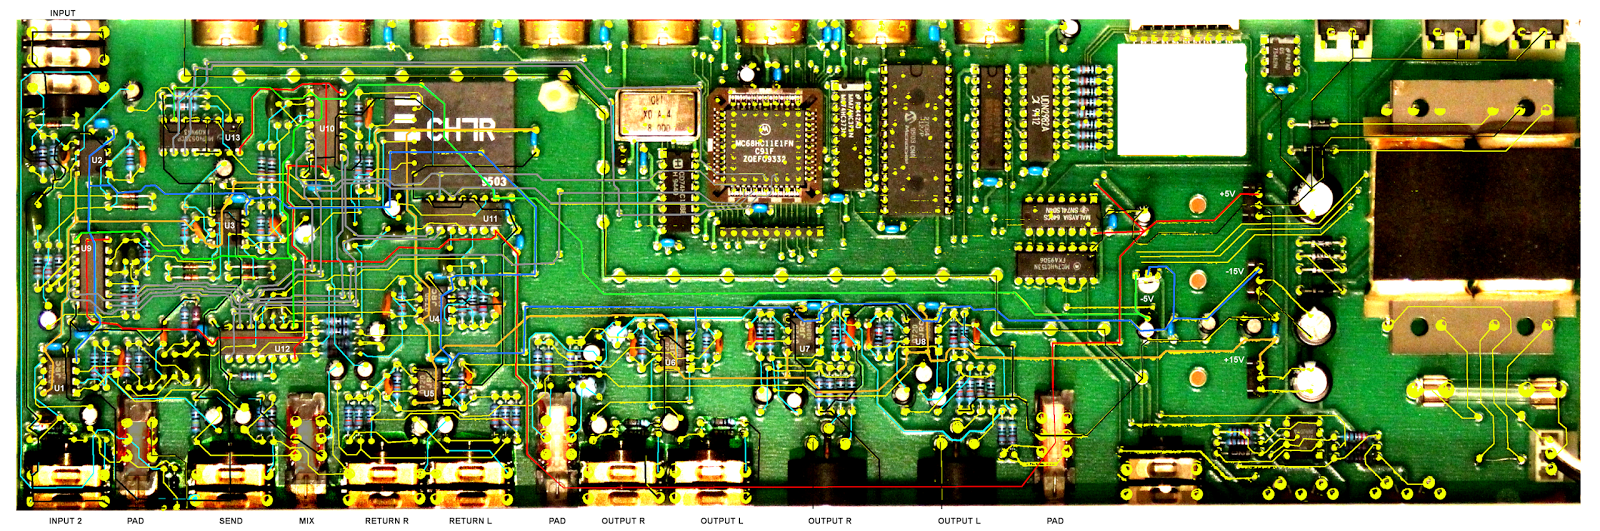 usr/local: TECH 21 SansAmp PSA-1 PCB traces and schematics on pcb motor, pcb assembly, pcb design flow, pcb hardware, pcb flow chart, pcb test, pcb construction,